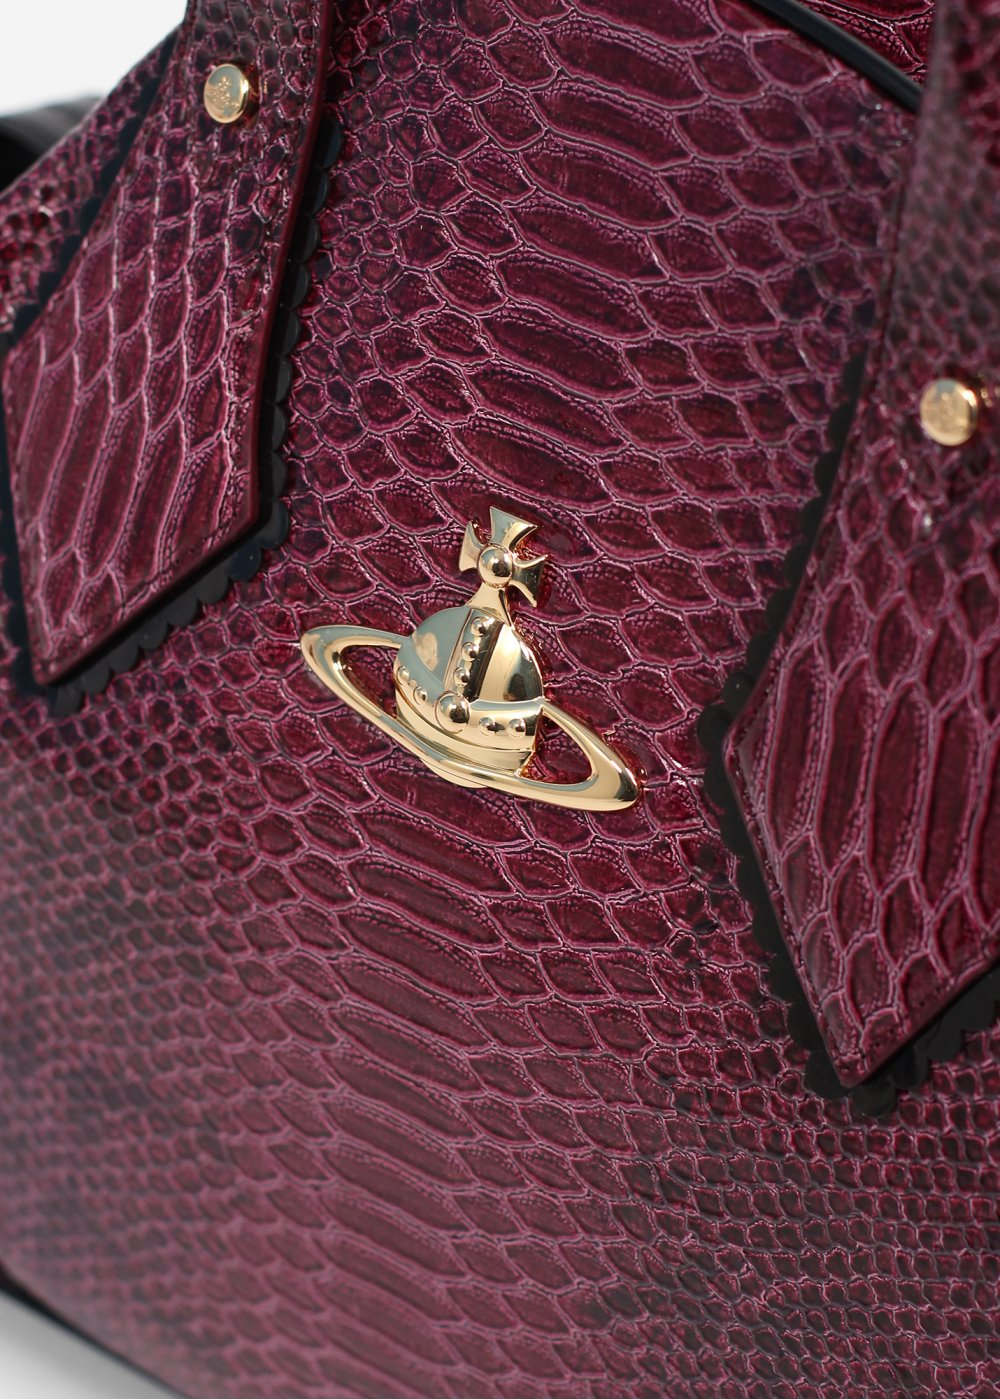 Eco-leather bag Vivienne Westwood Where Can I Order Cheap The Cheapest qLS6eS2FD7